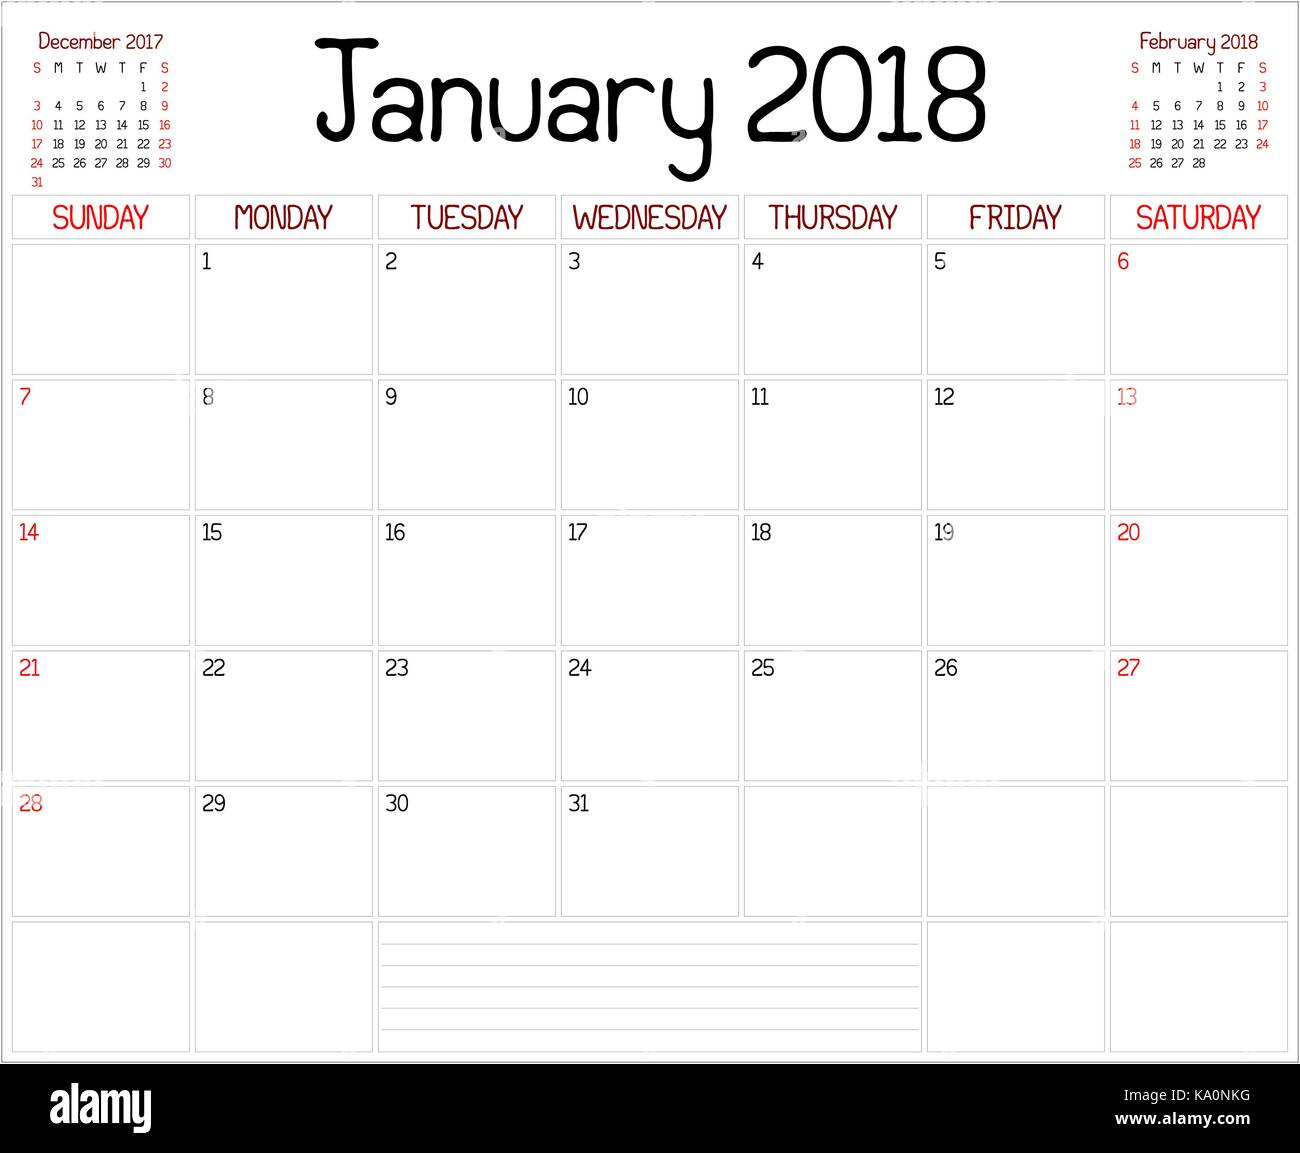 Year 2018 January Planner - A monthly planner calendar for ...